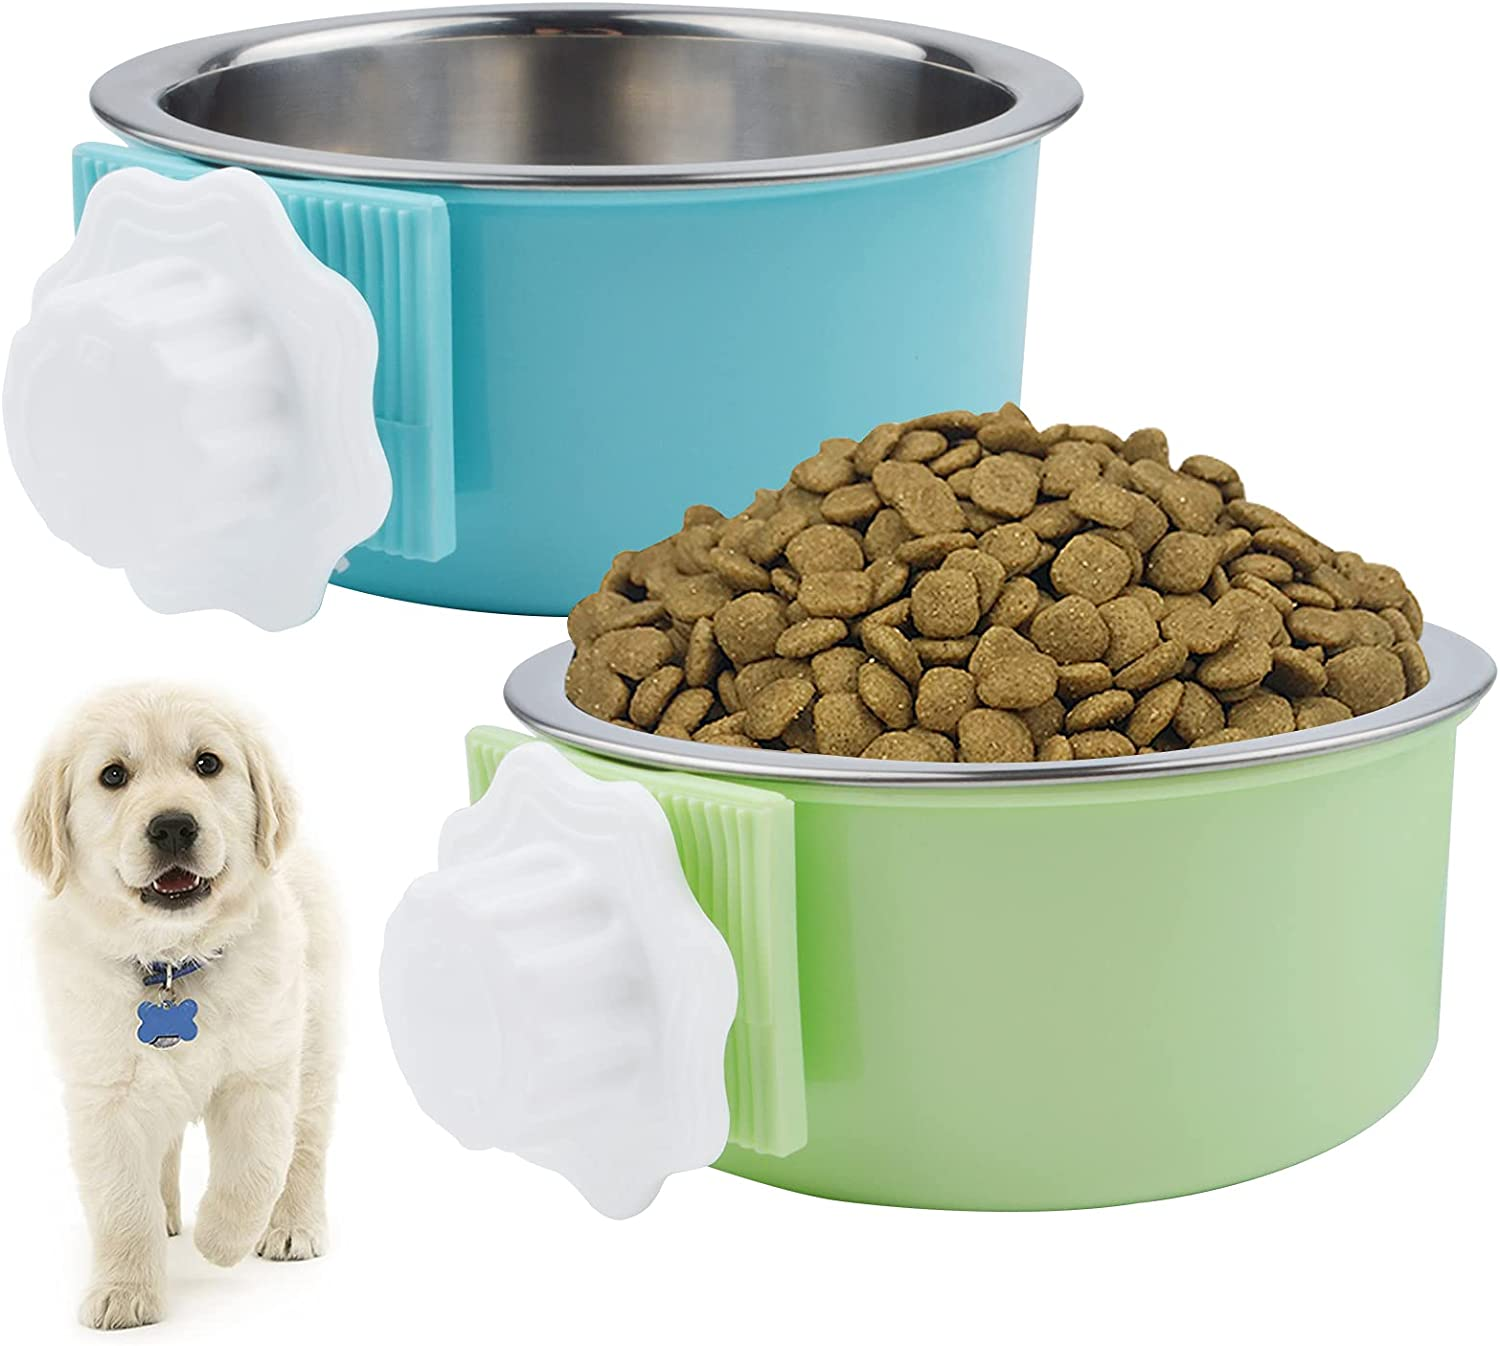 2 Pack Dog Crate Water Bowl No Spill, 2-in-1 Plastic Bowl & Stainless Steel Pet Bowl, Removable Kennel Water Bowl for Pet Small Dogs, Hanging Cage Water Feeder Coop Cup for Cat Bird Rat Rabbit